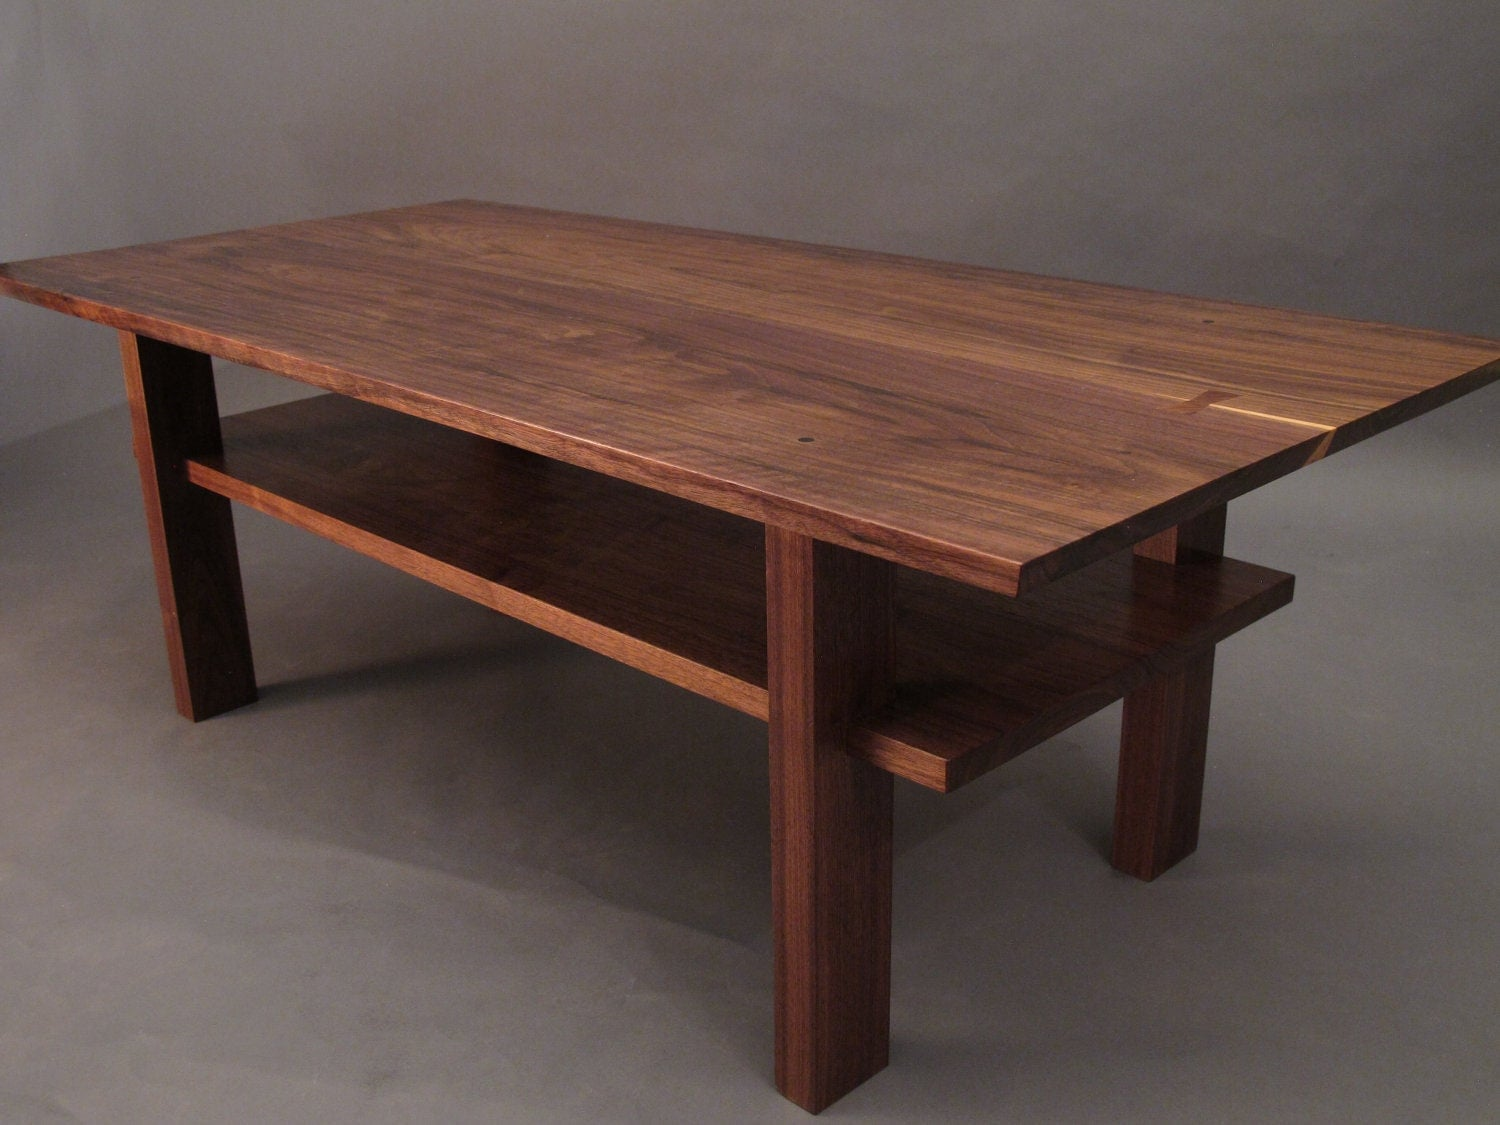 Walnut coffee table small wood tables for living room narrow for Coffee table wood